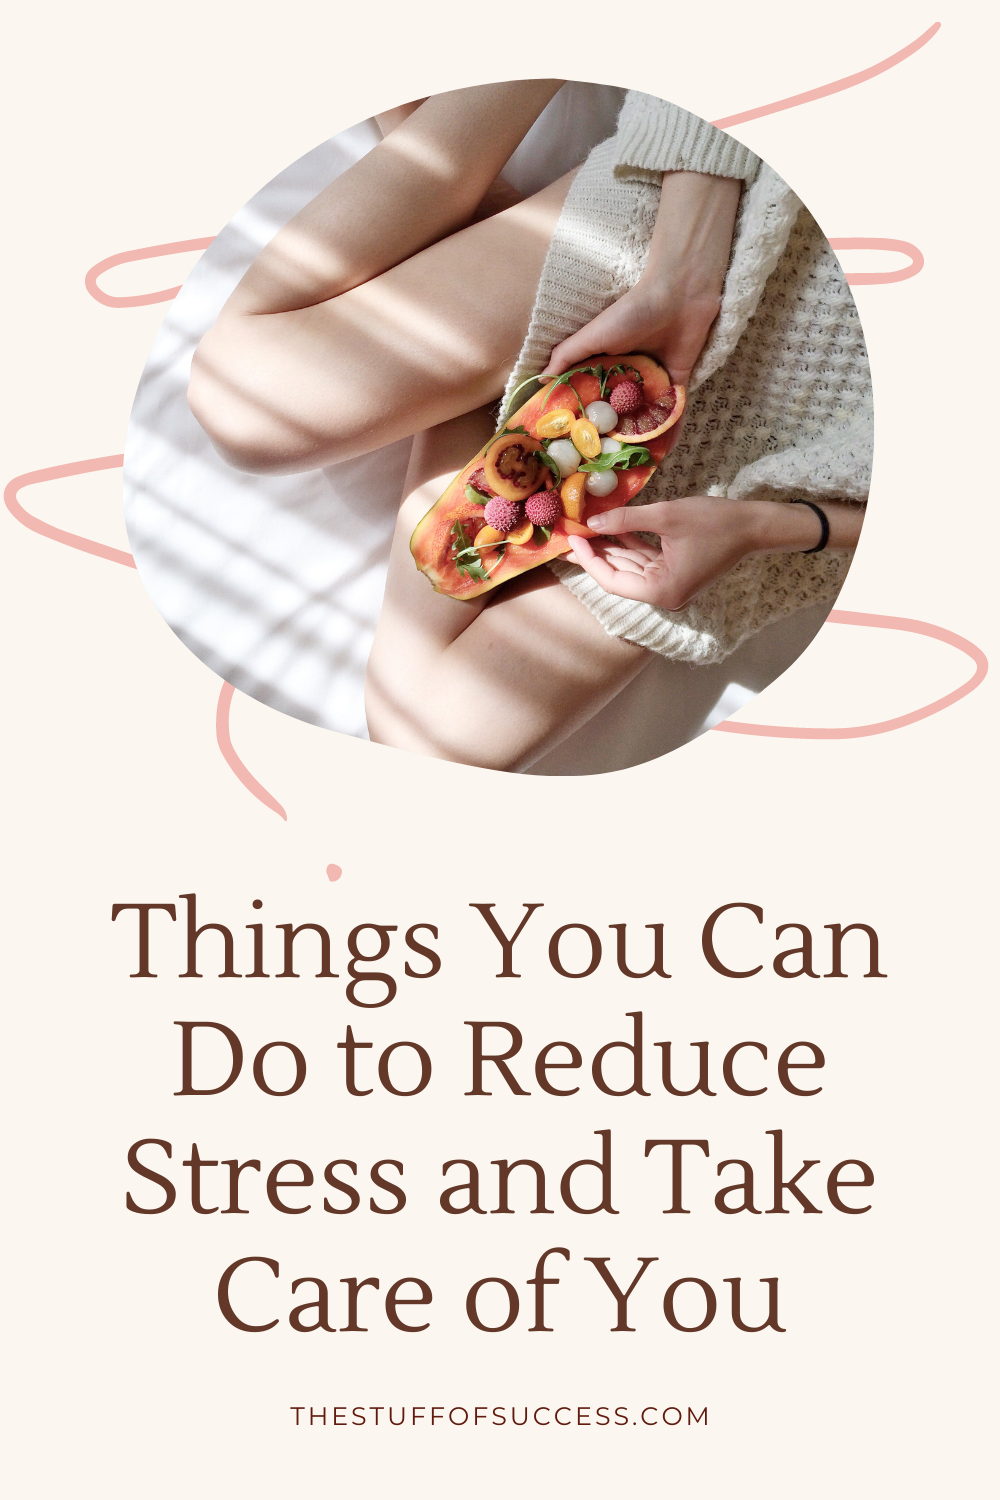 Things You Can Do to Reduce Stress and Take Care of You